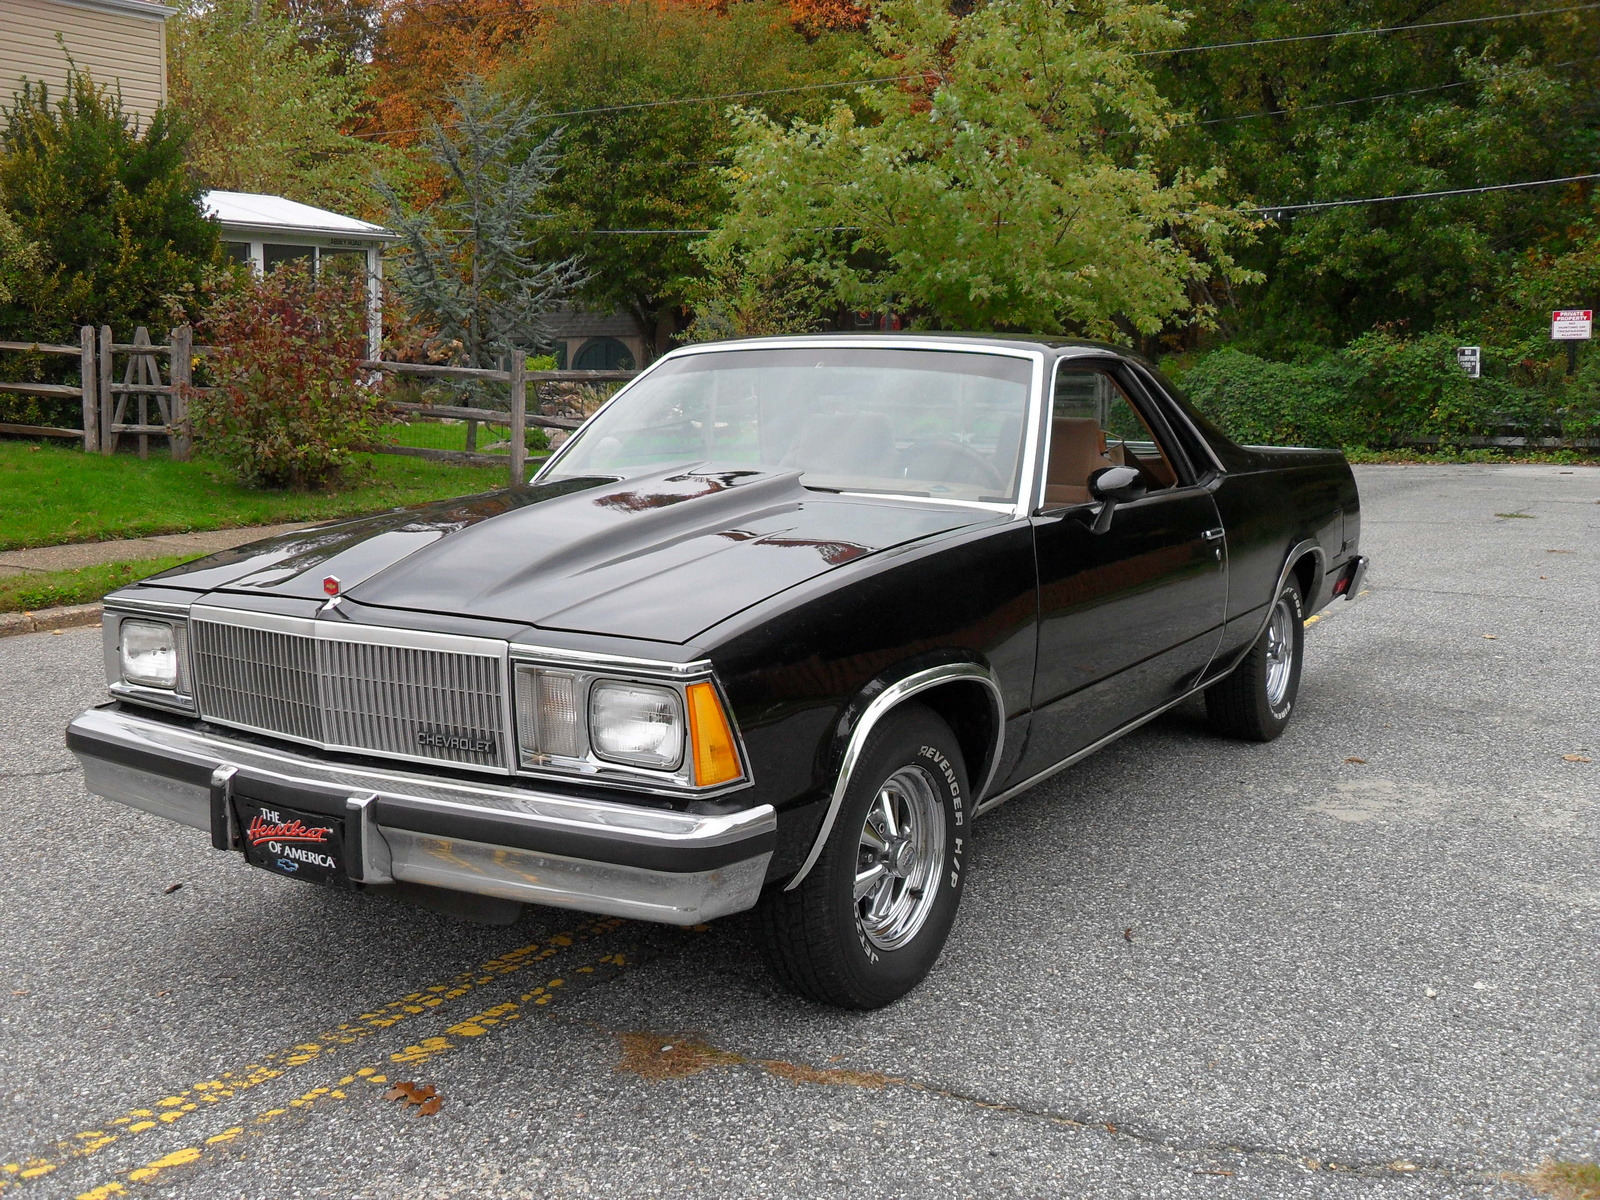 1000 Images About 1980 El Camino On Pinterest Chevy